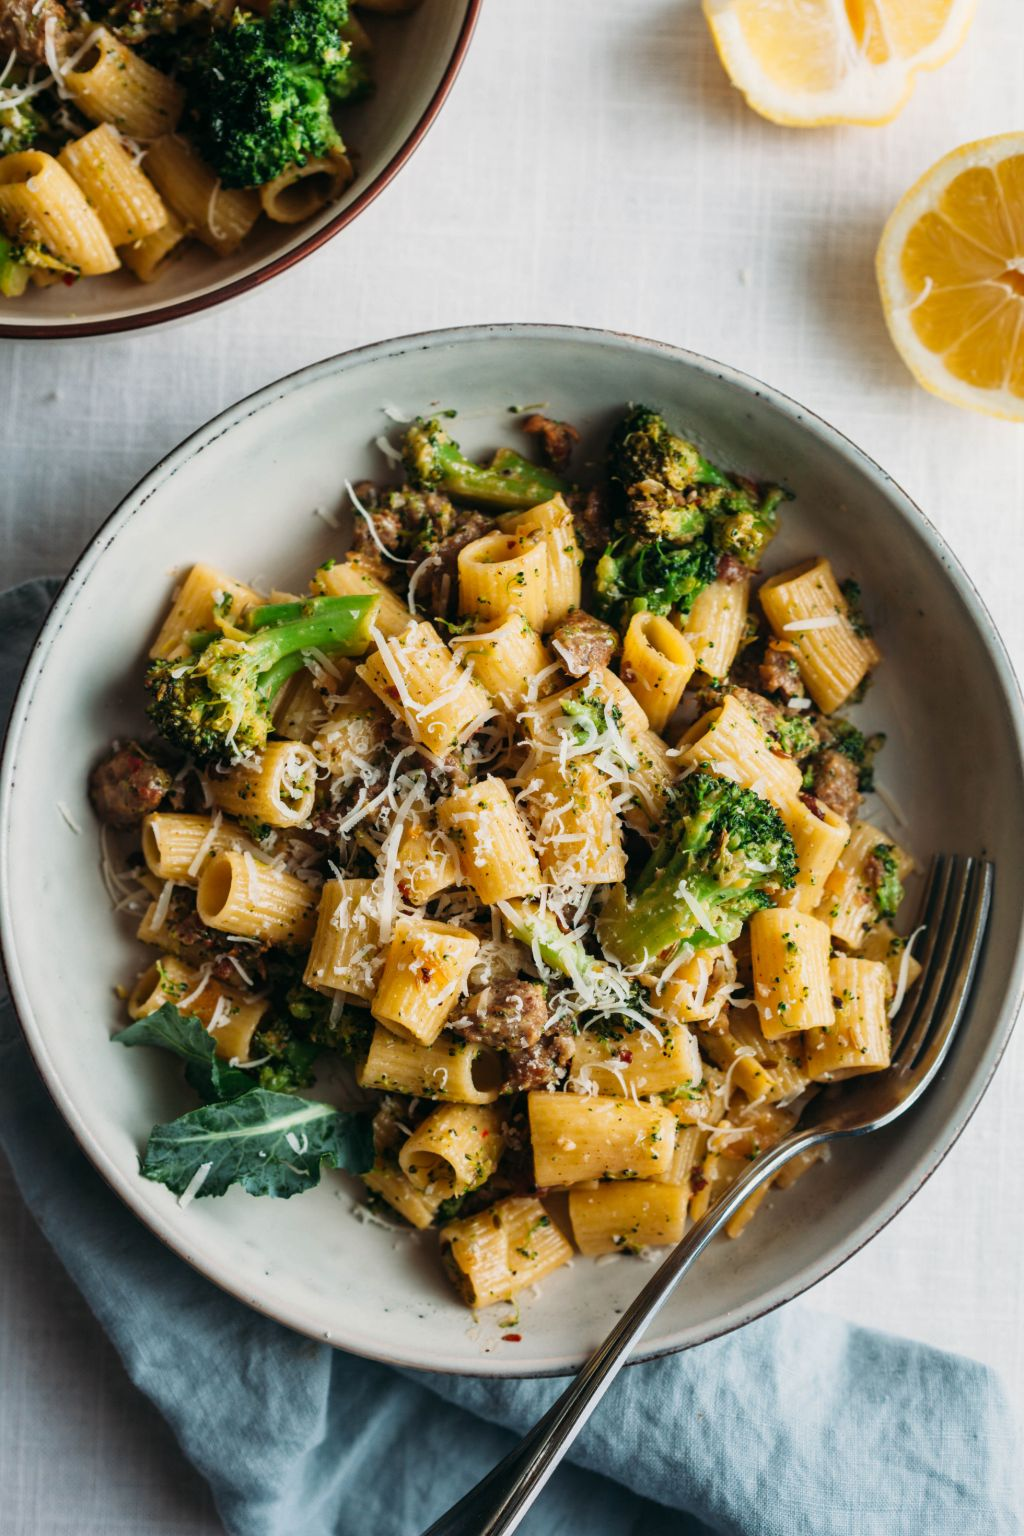 Rigatoni with Broccoli, Lemon, and Sausage - Tastemaker Blog